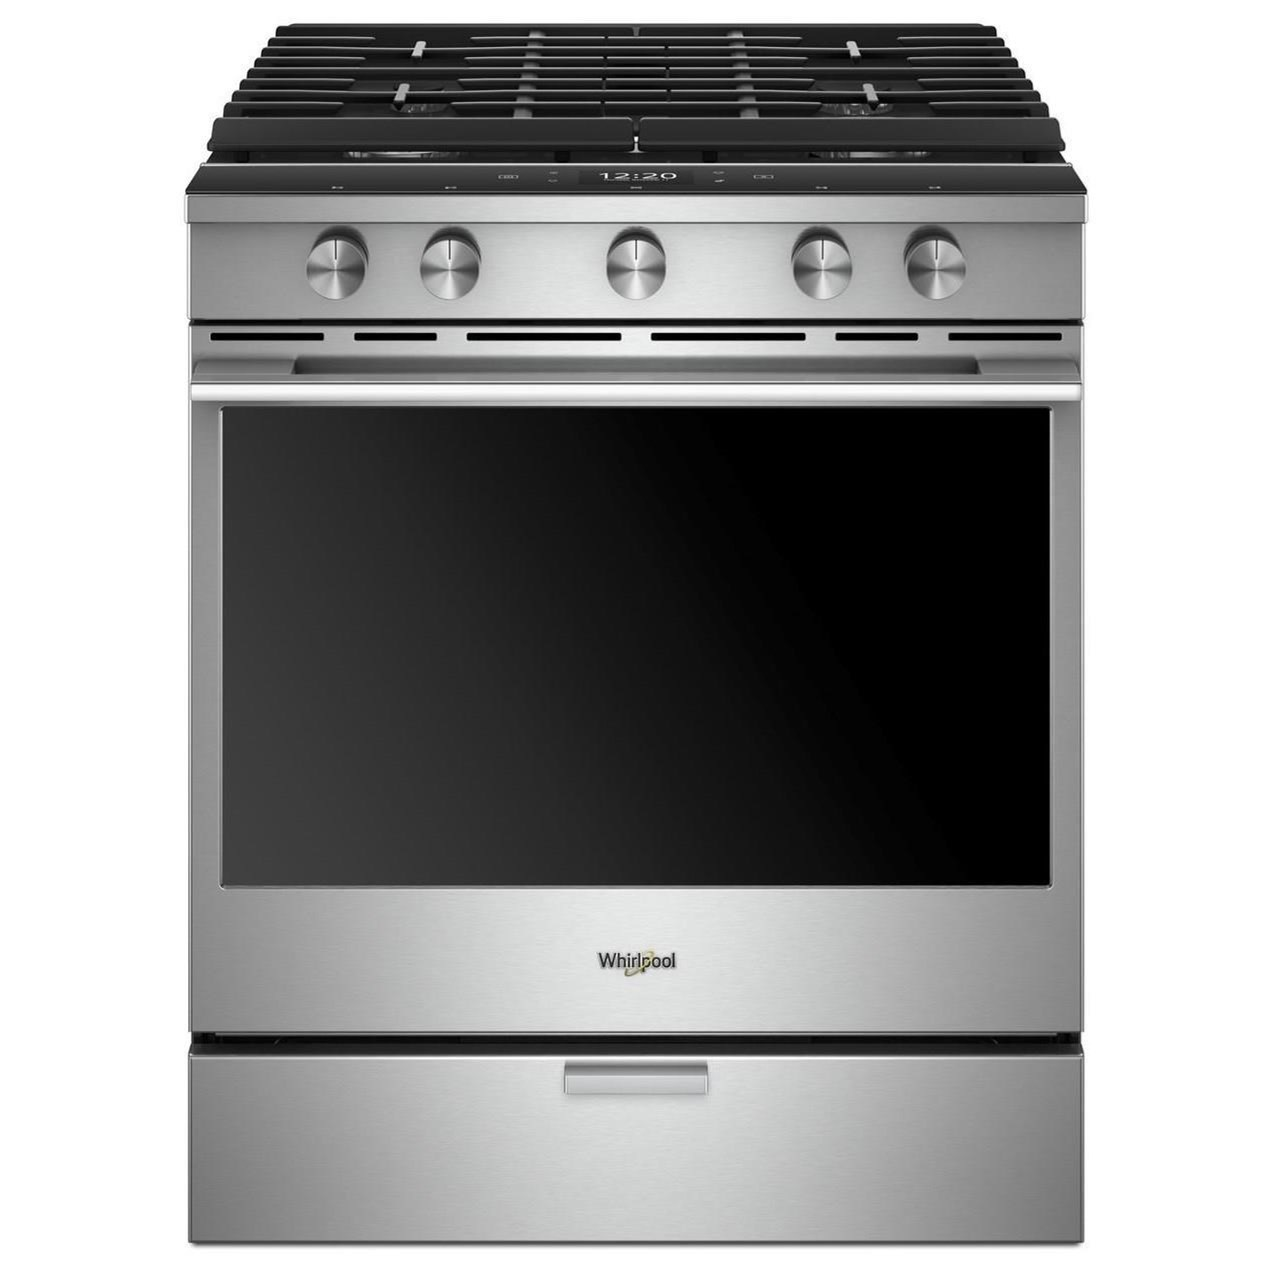 5.8 Cu. Ft. Slide-in Gas Range